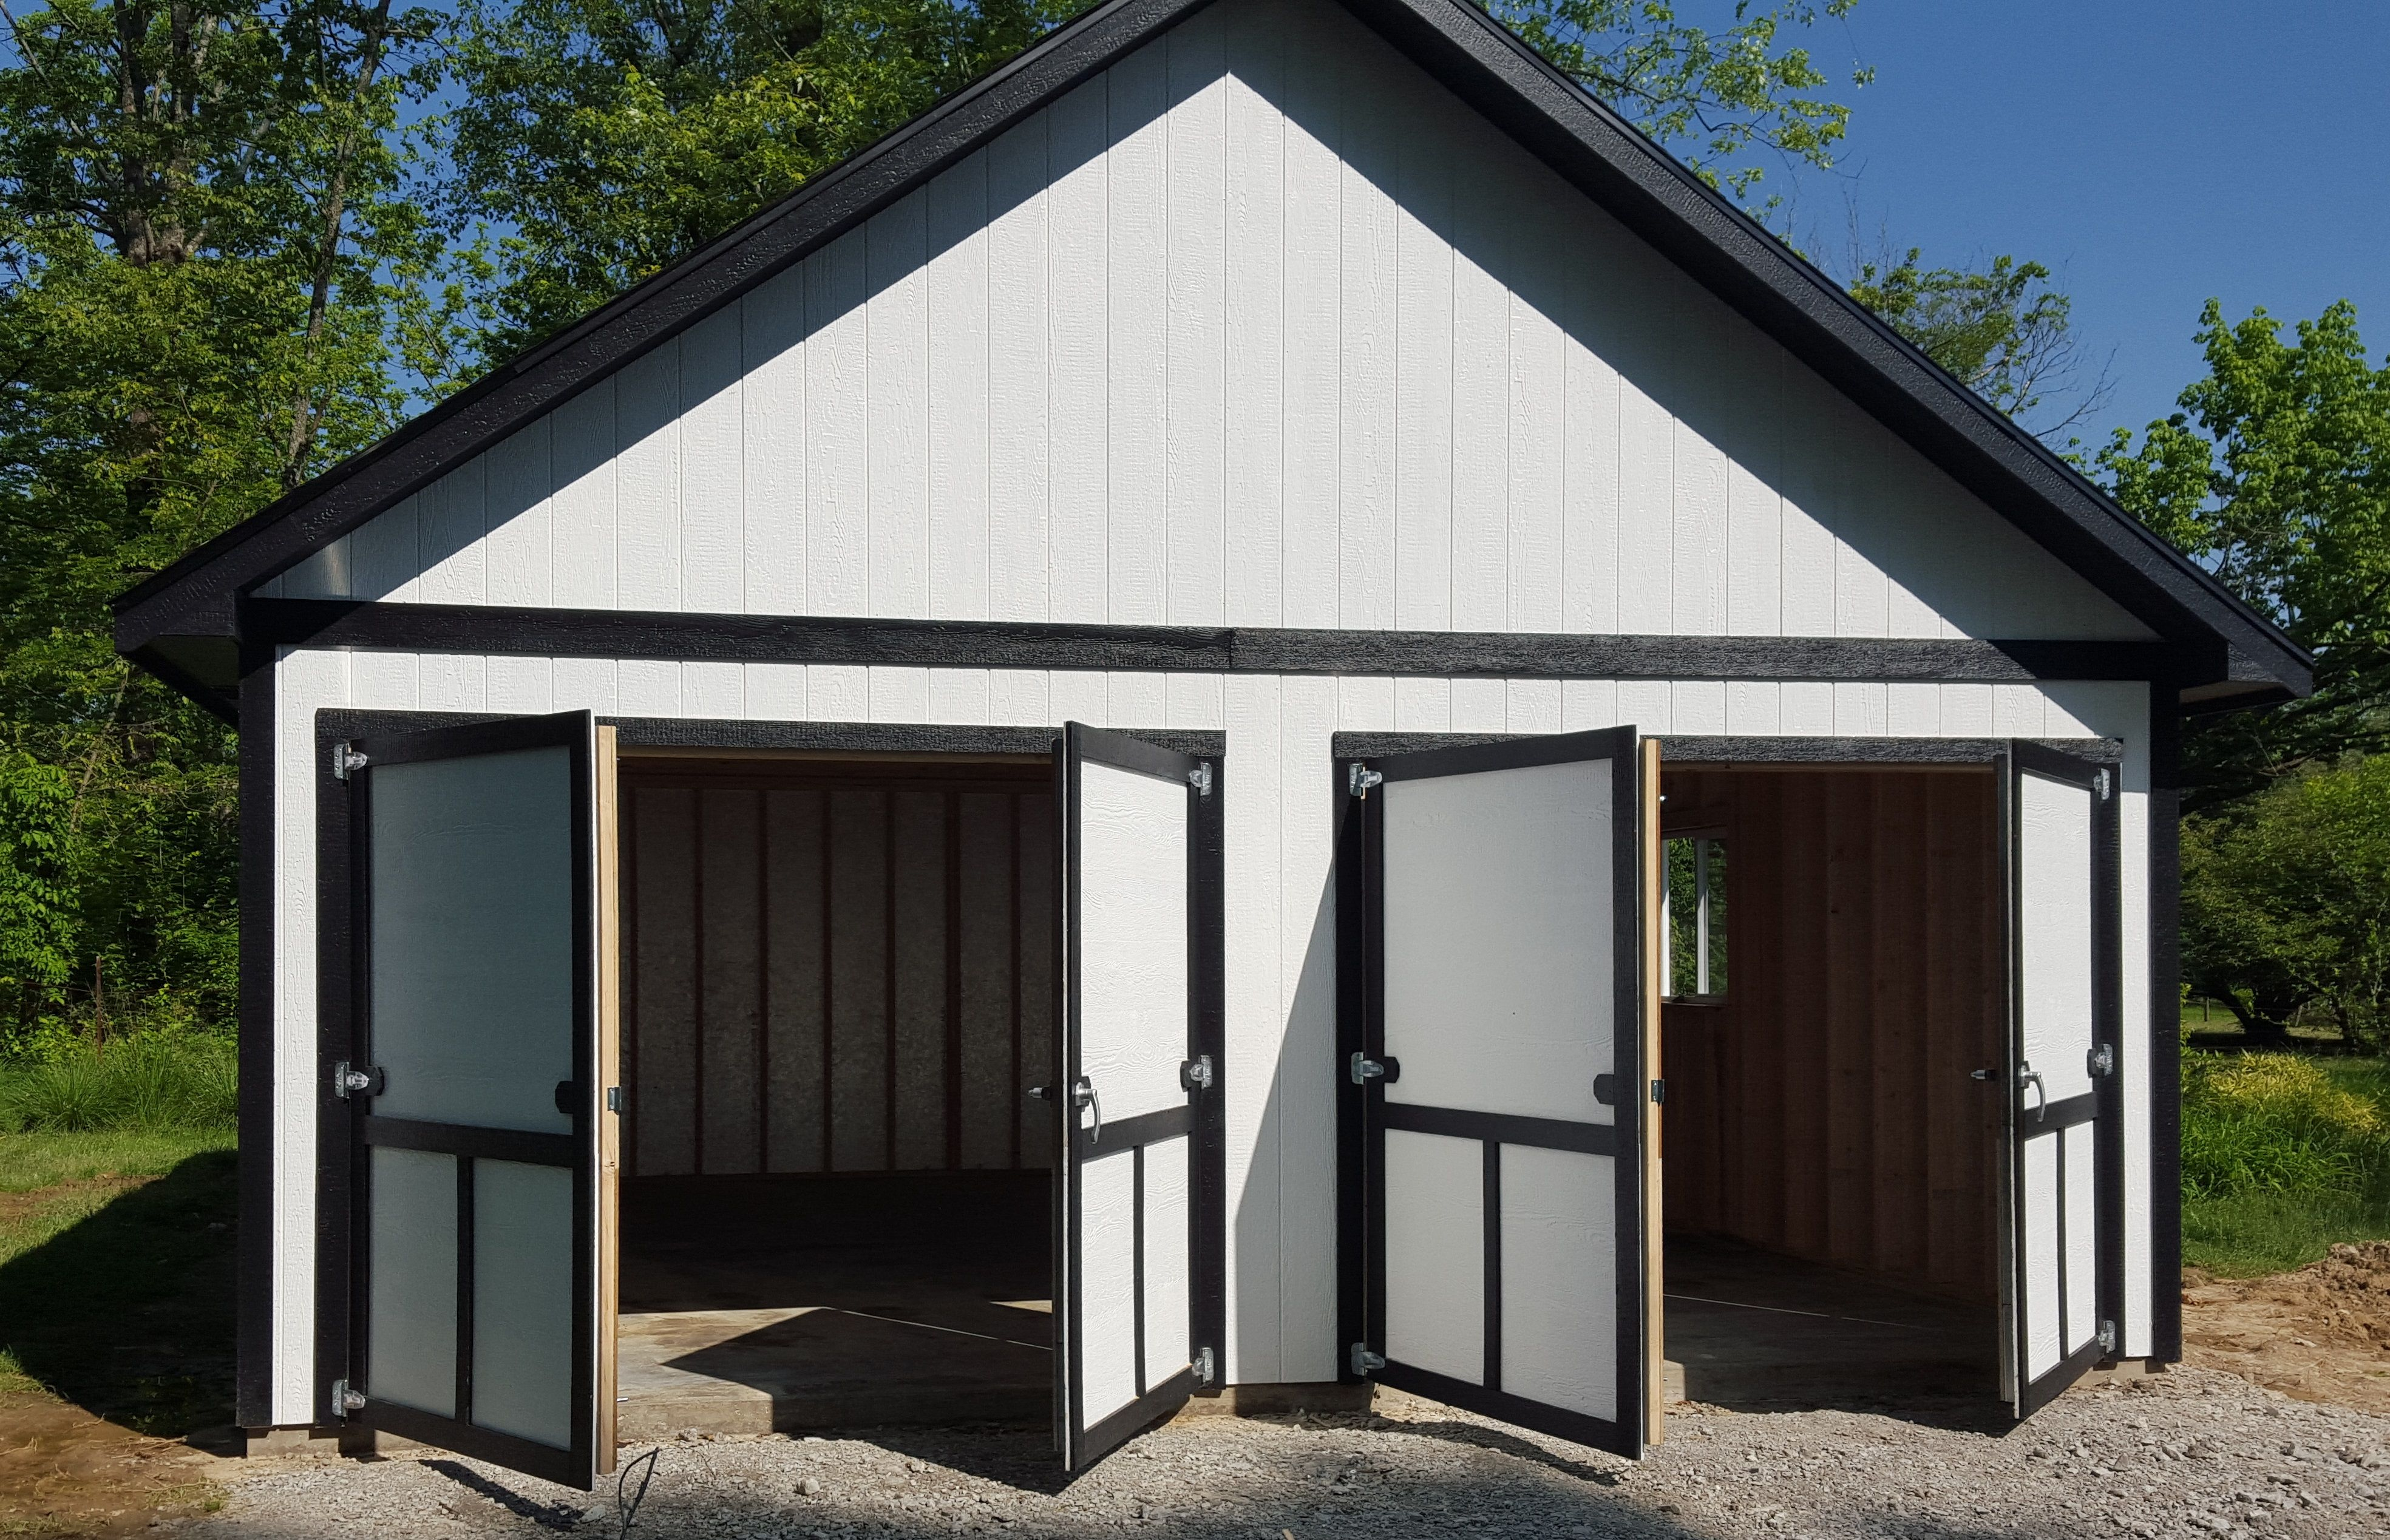 Custom double doors and a raised roof pitch for this